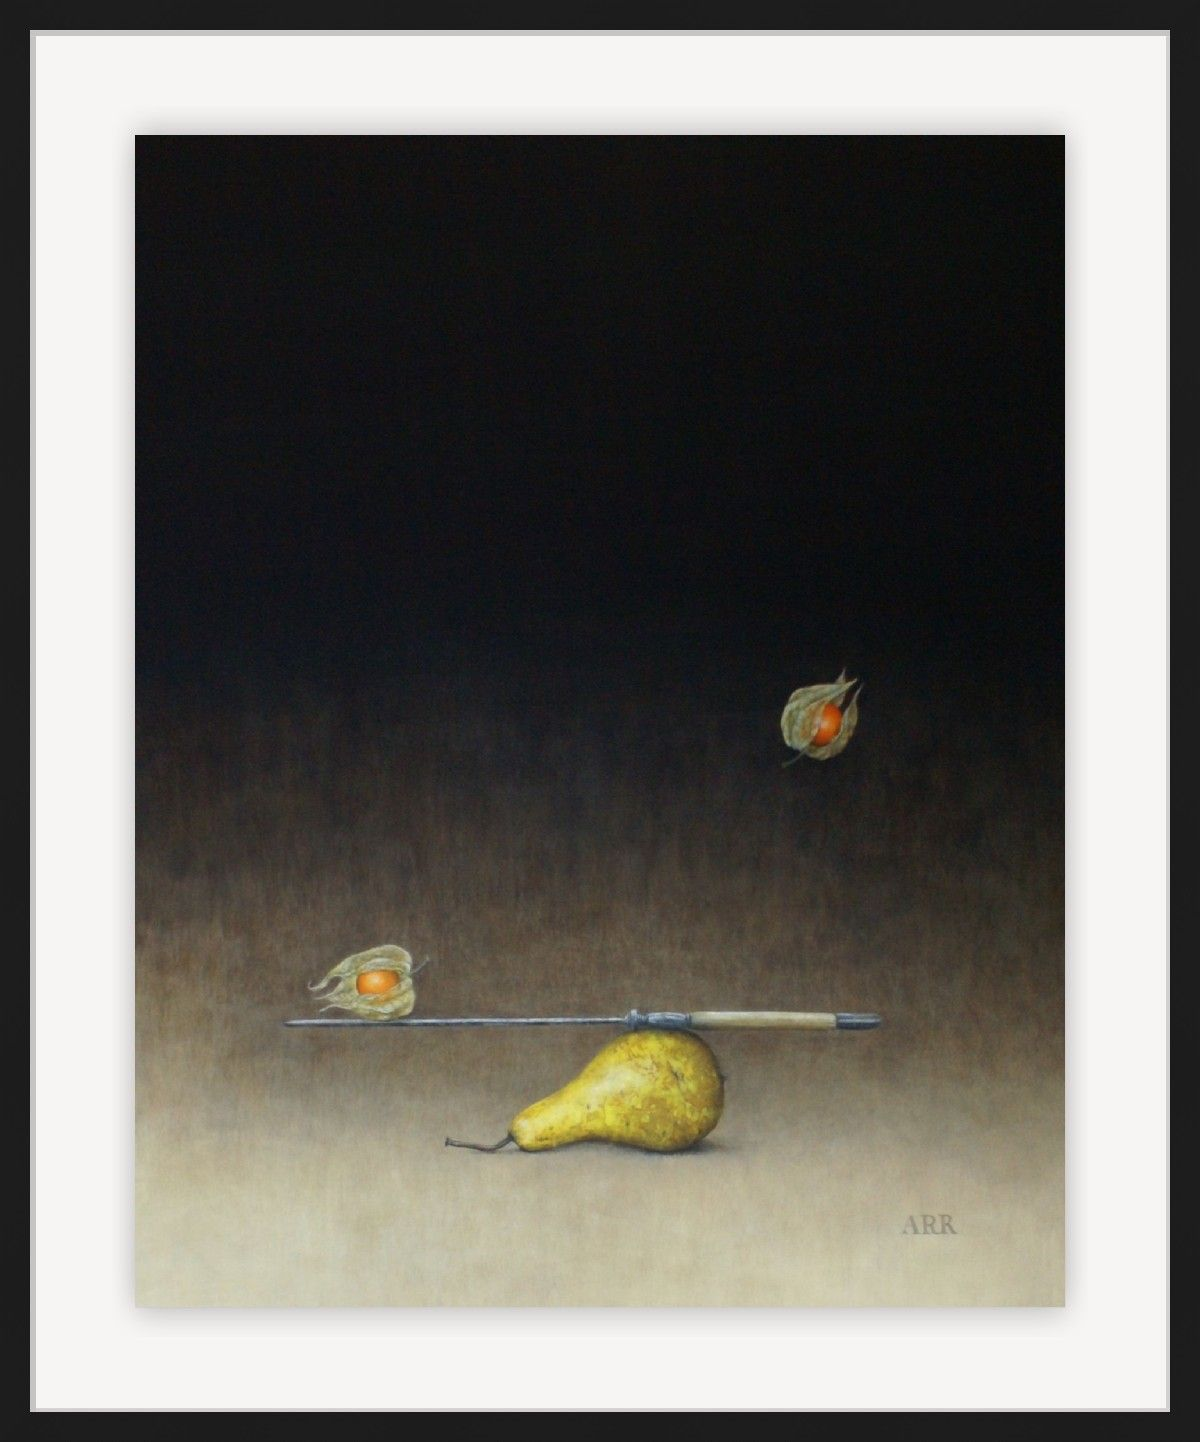 Pear with Balancing Knife and Physalis by Alison Rankin